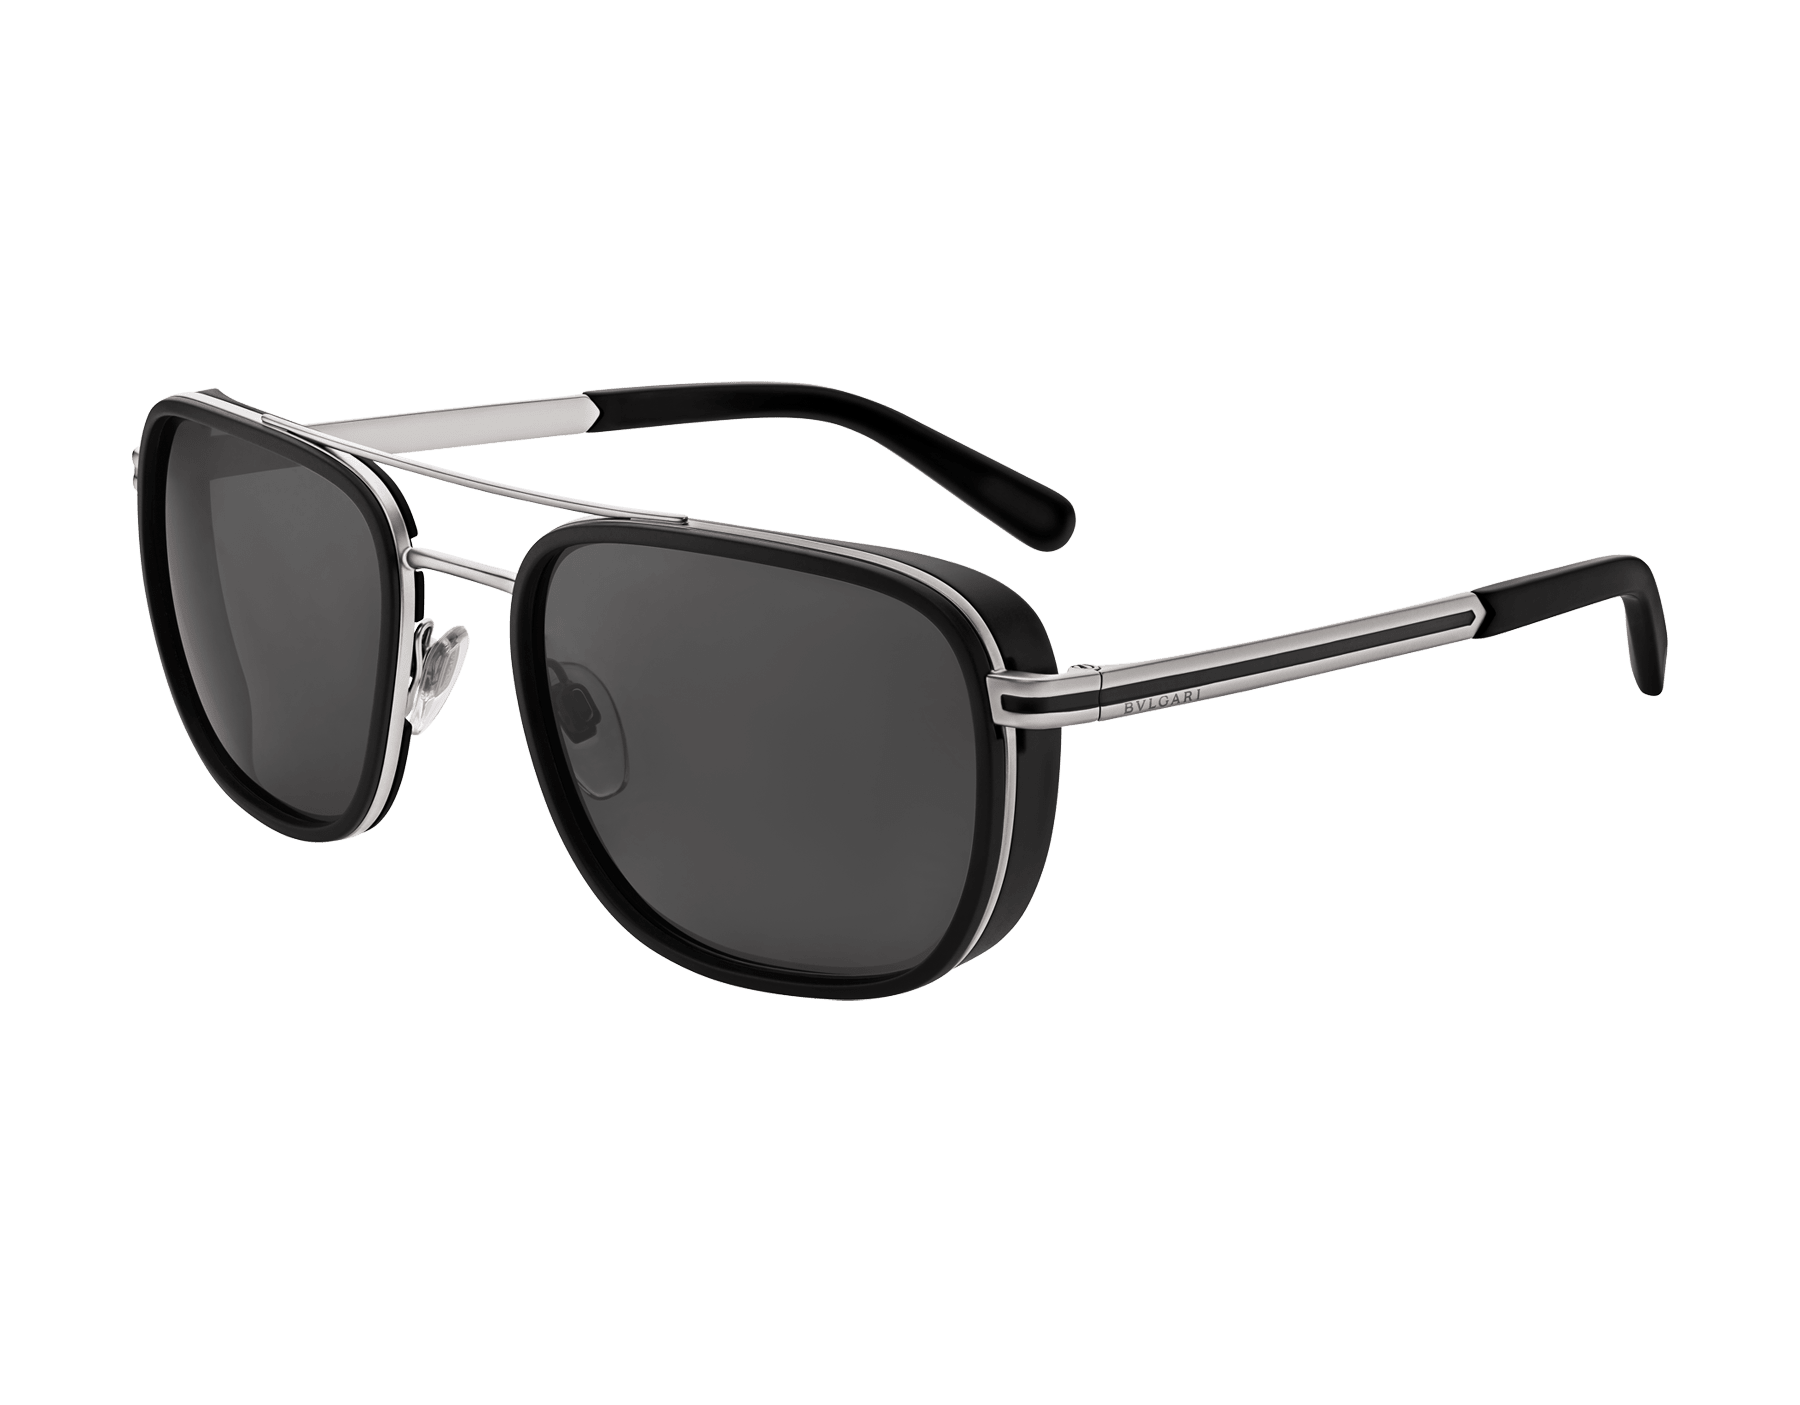 Bvlgari Bvlgari metal double bridge rectangular sunglasses. 904082 image 1